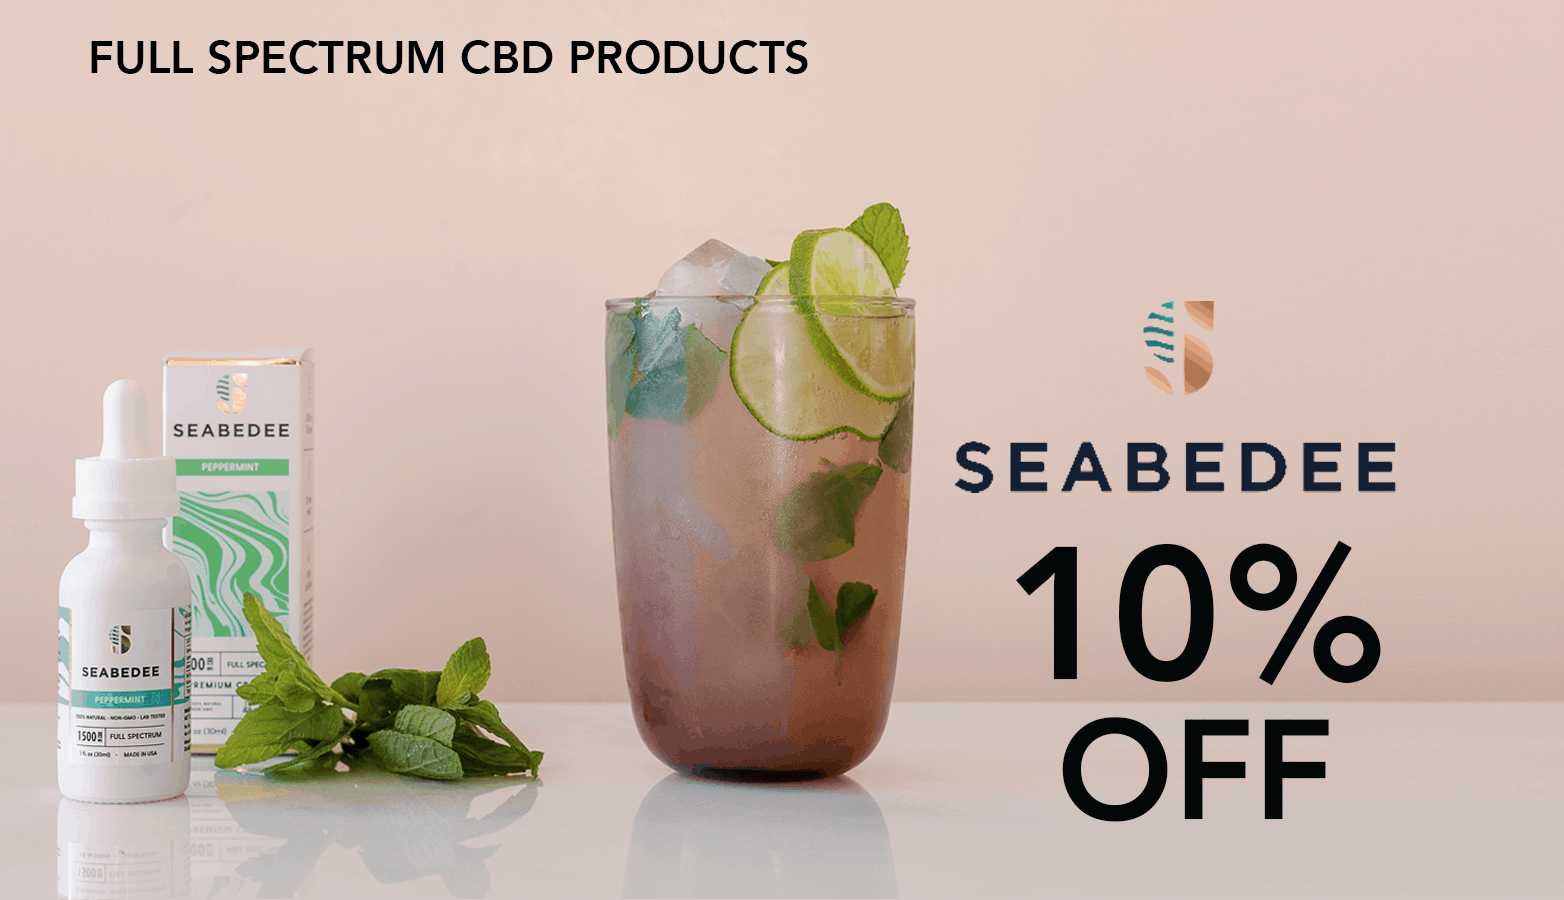 Seabedee CBD Coupon Code Offer Website